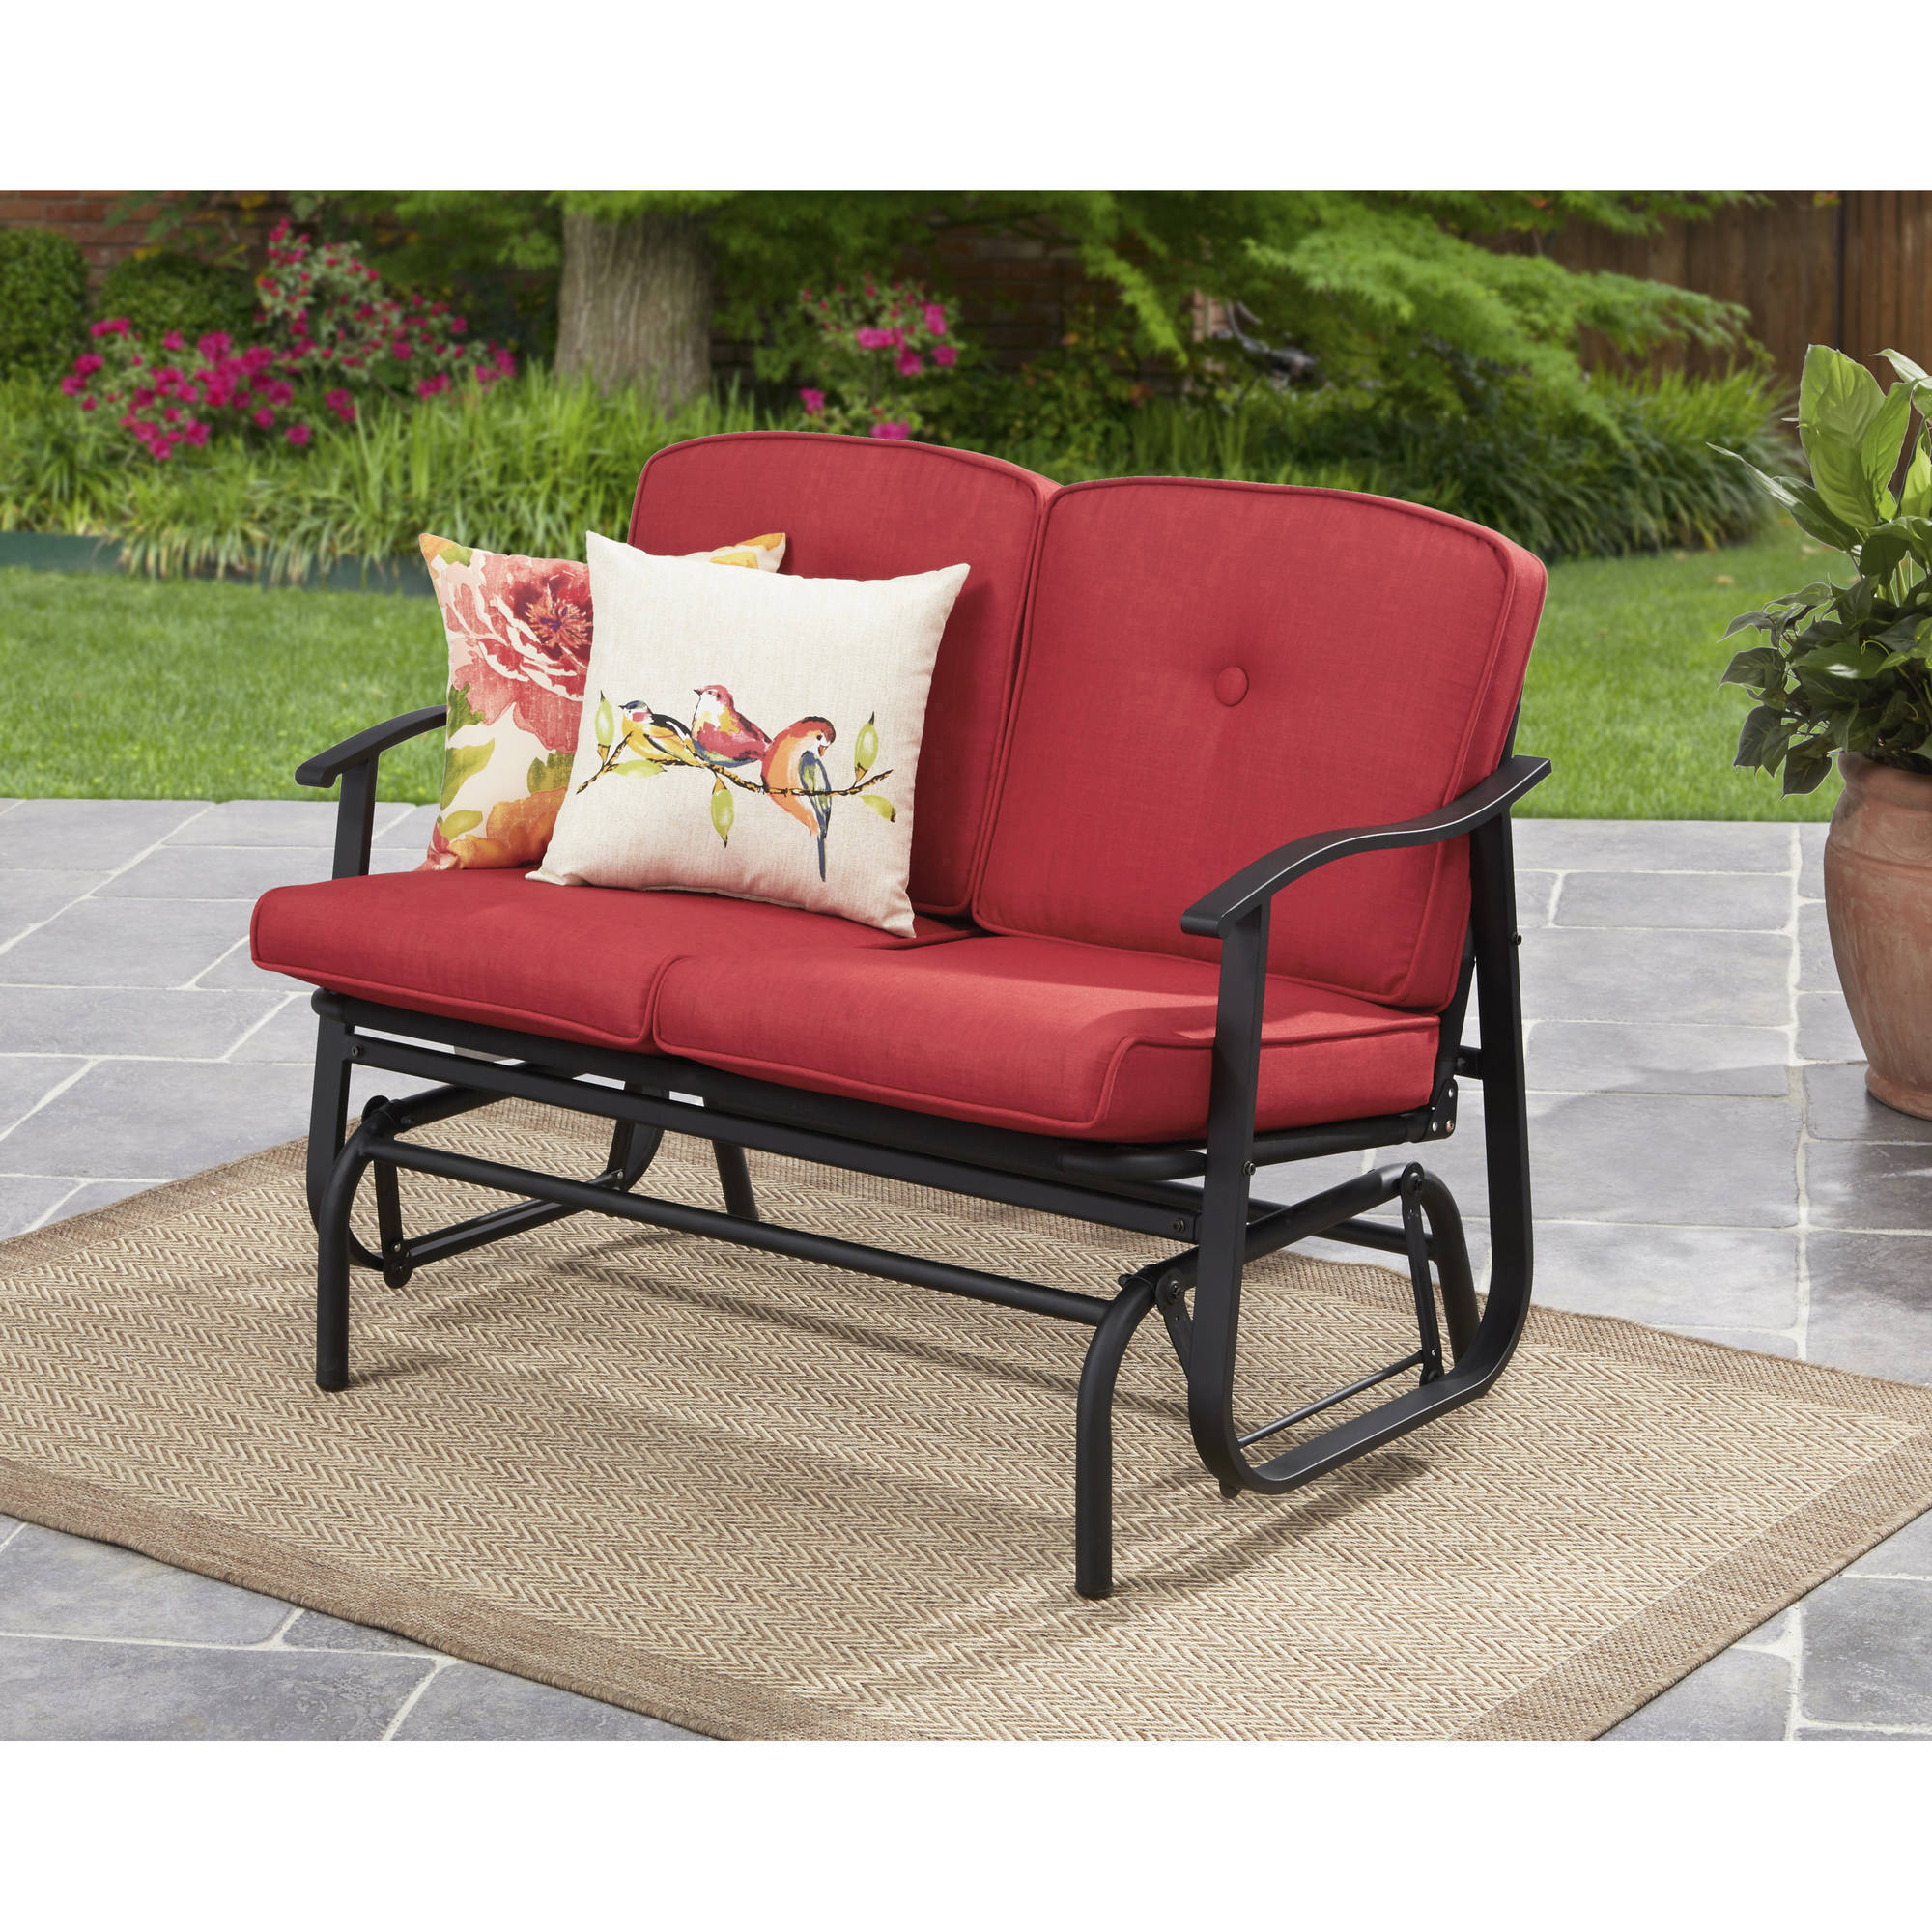 swing chair dragon mart white barber loveseat glider bench outdoor rocker with cushions